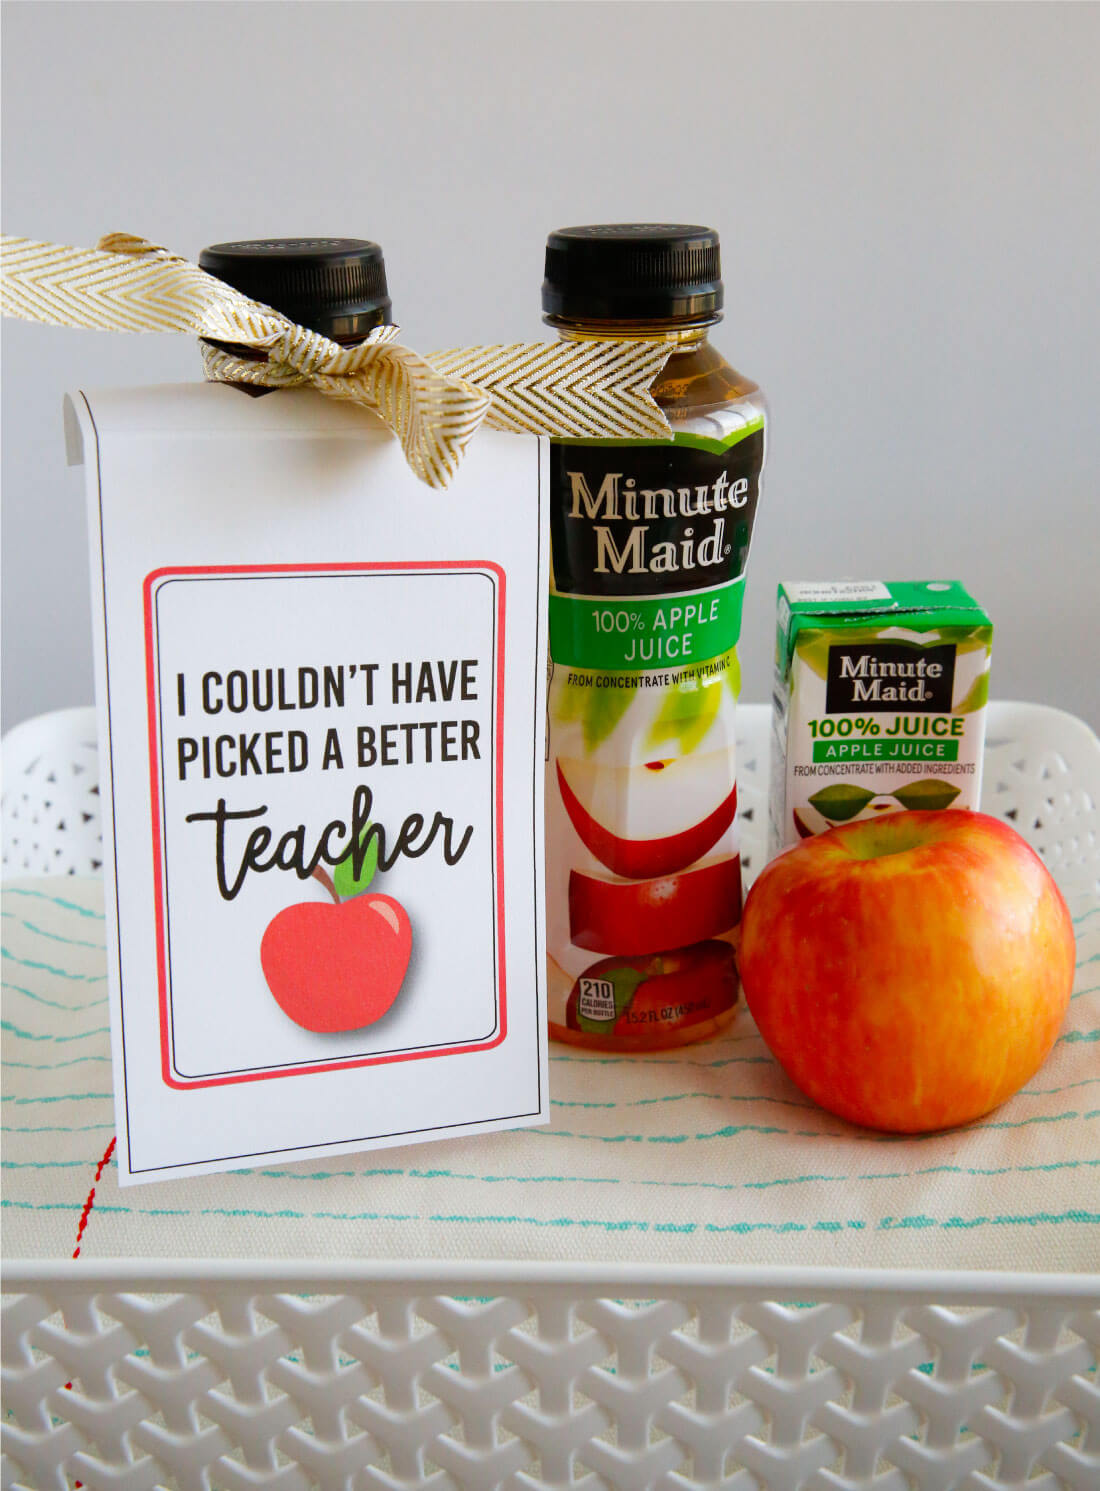 Make a care package for your teacher for back to school with these cute teacher tags! Free printable via www.thirtyhandmadedays.com